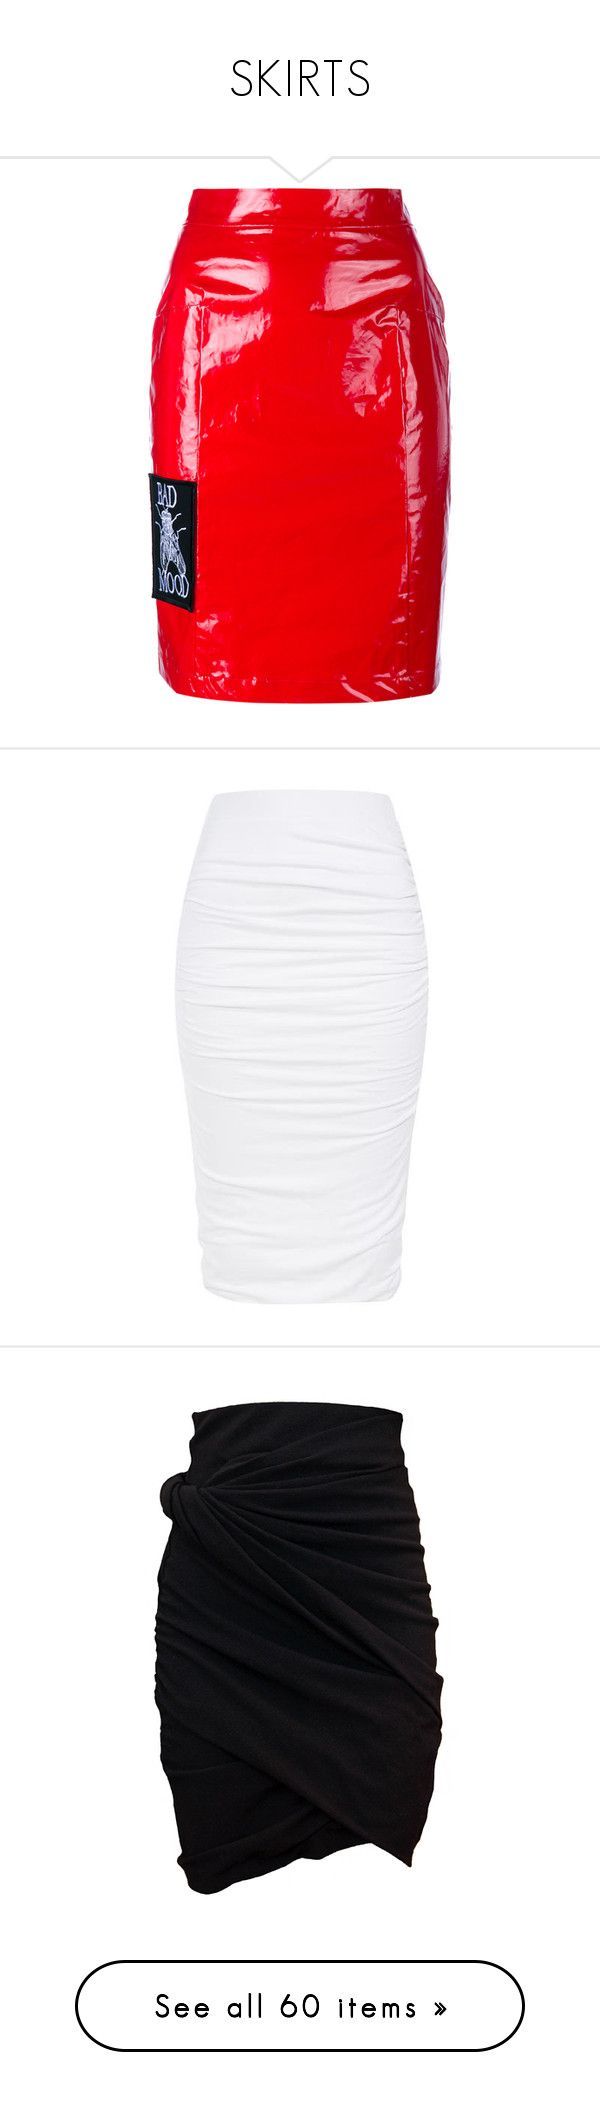 """""""SKIRTS"""" by roexstylez89 ❤ liked on Polyvore featuring skirts, ashley williams, high-waisted pencil skirts, high waisted pencil skirt, red skater skirt, red skirt, skater skirt, bottoms, saias and white"""